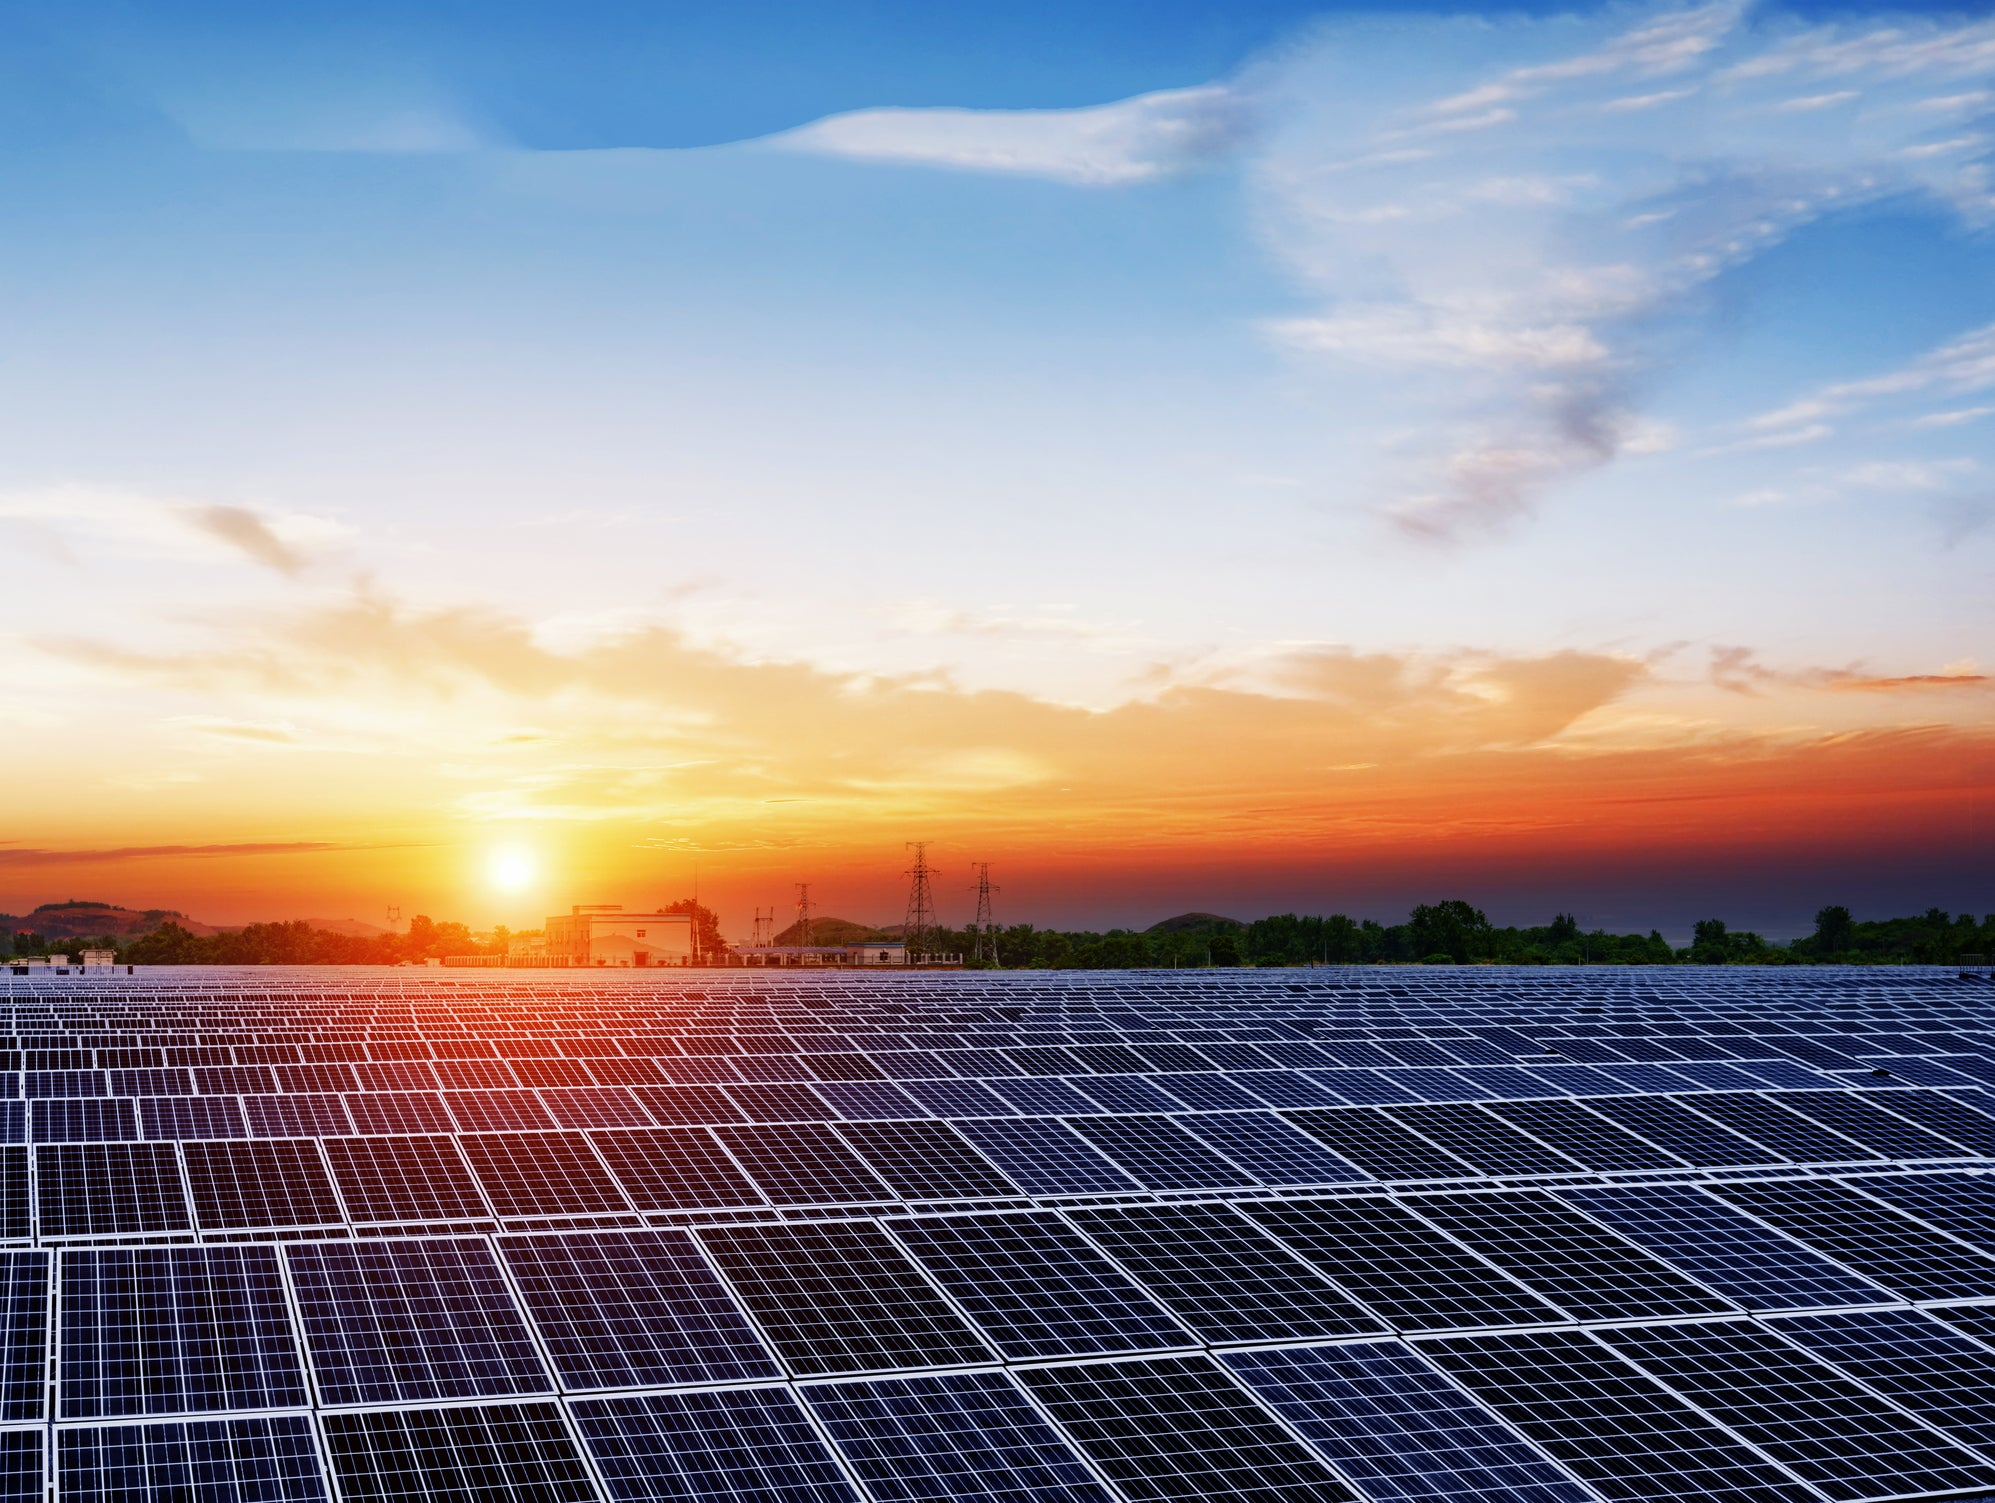 This Renewable Energy Stock Has Plenty of Power to Keep Growing its High-Yielding Payout | The Motley Fool